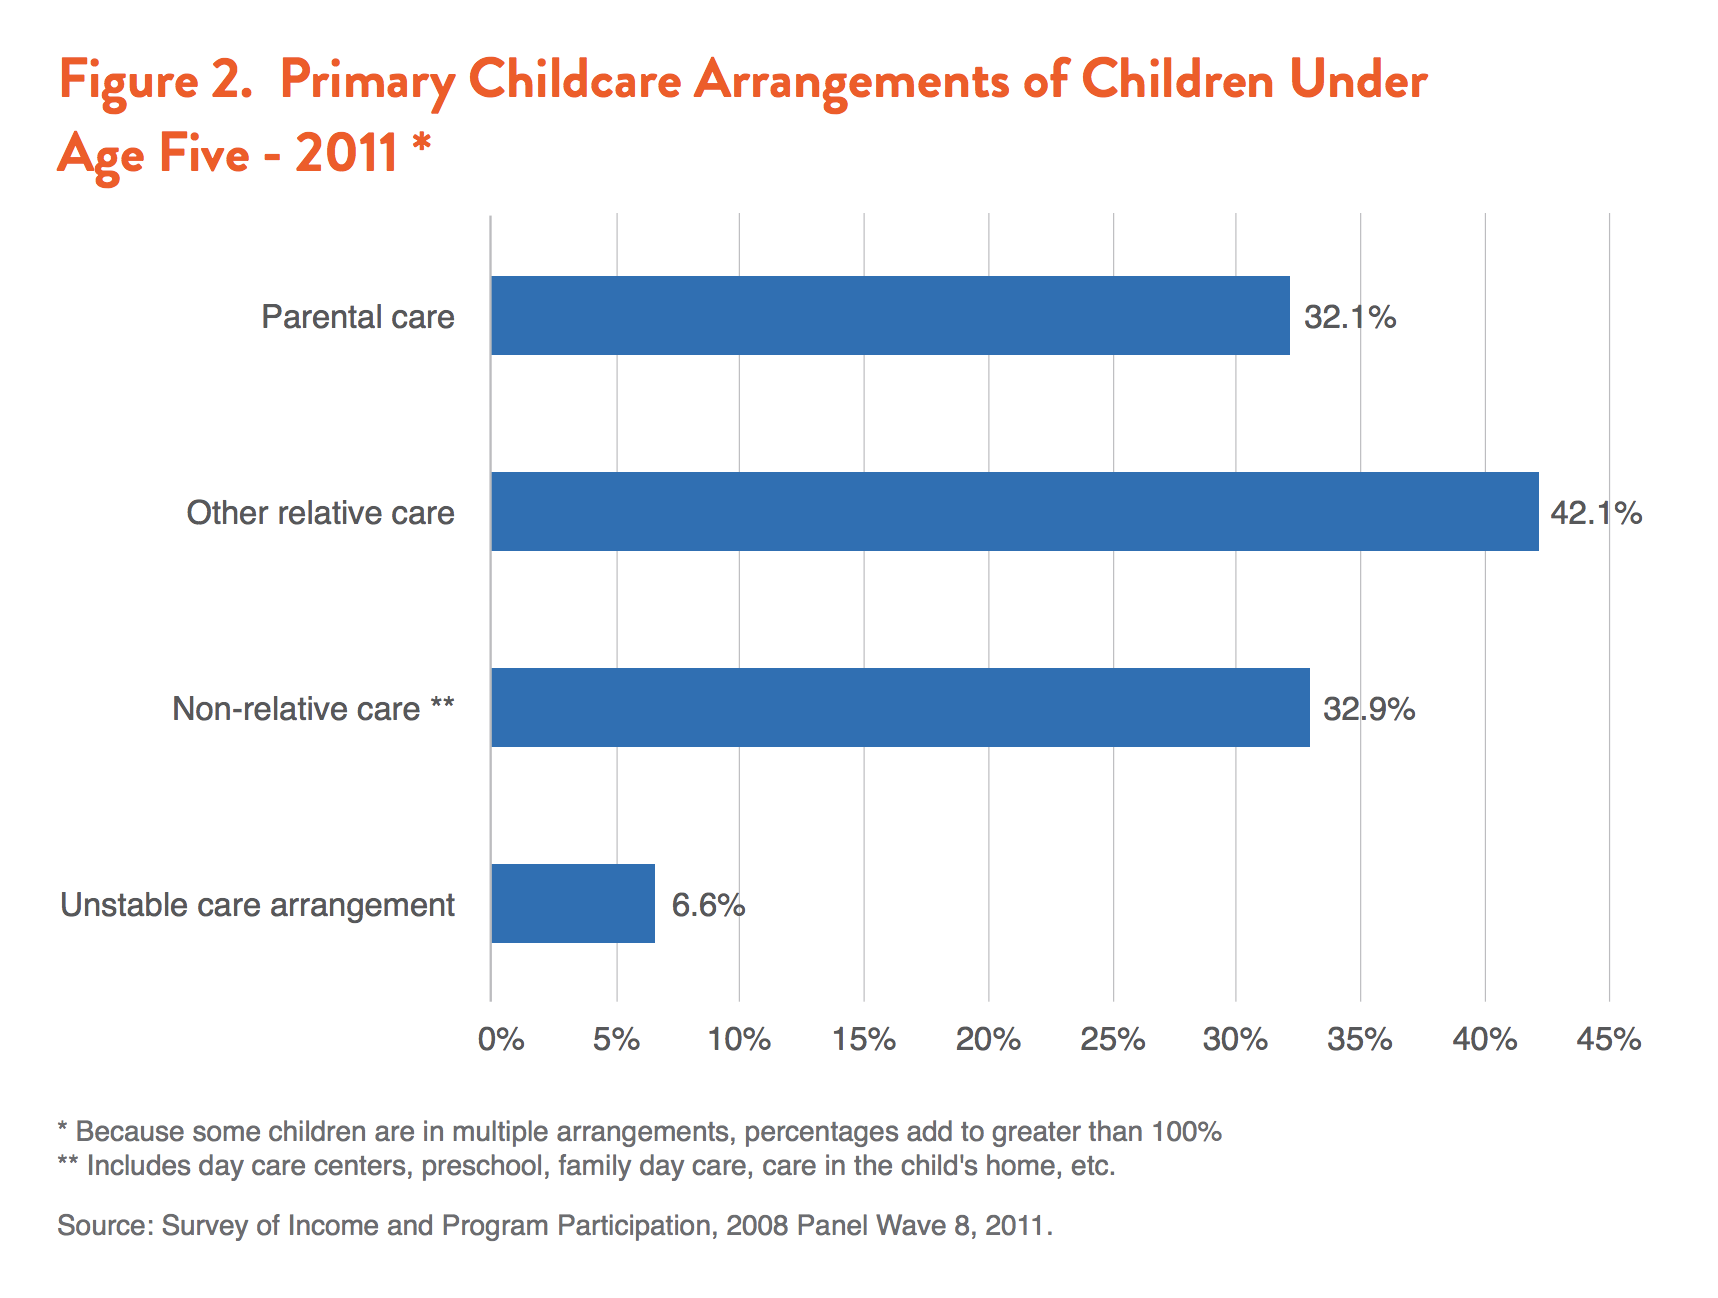 A Third Of Children Under Age 5 Were In Non Relative Care Including Day Centers Preschool Family Or Another Arrangement